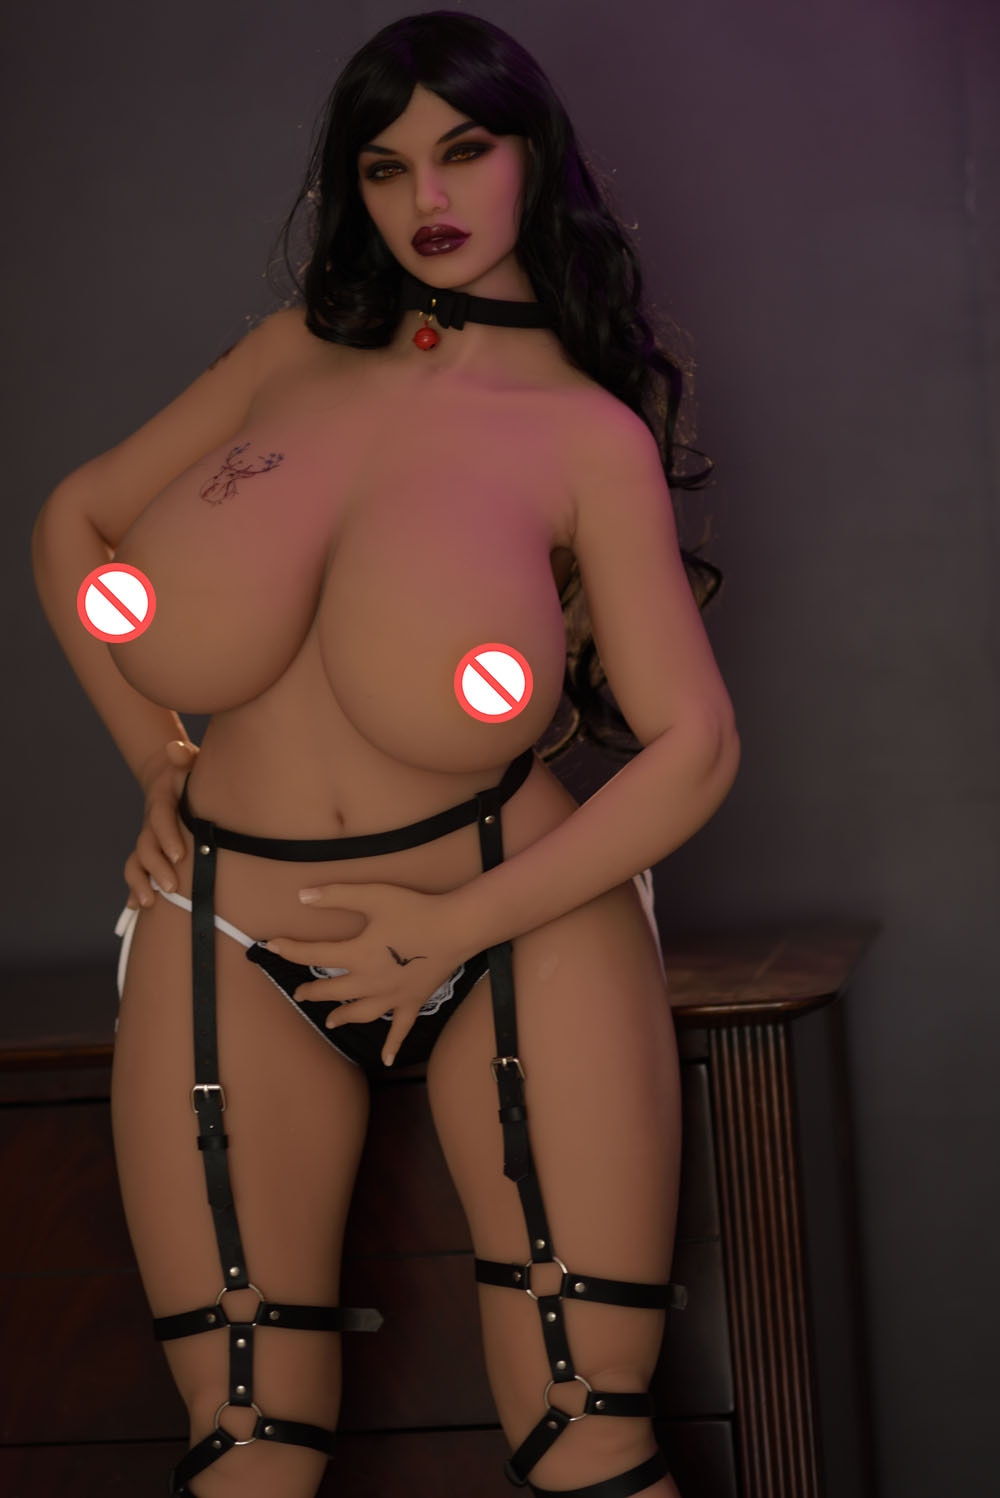 Big Ass and Huge Breast Sex Doll